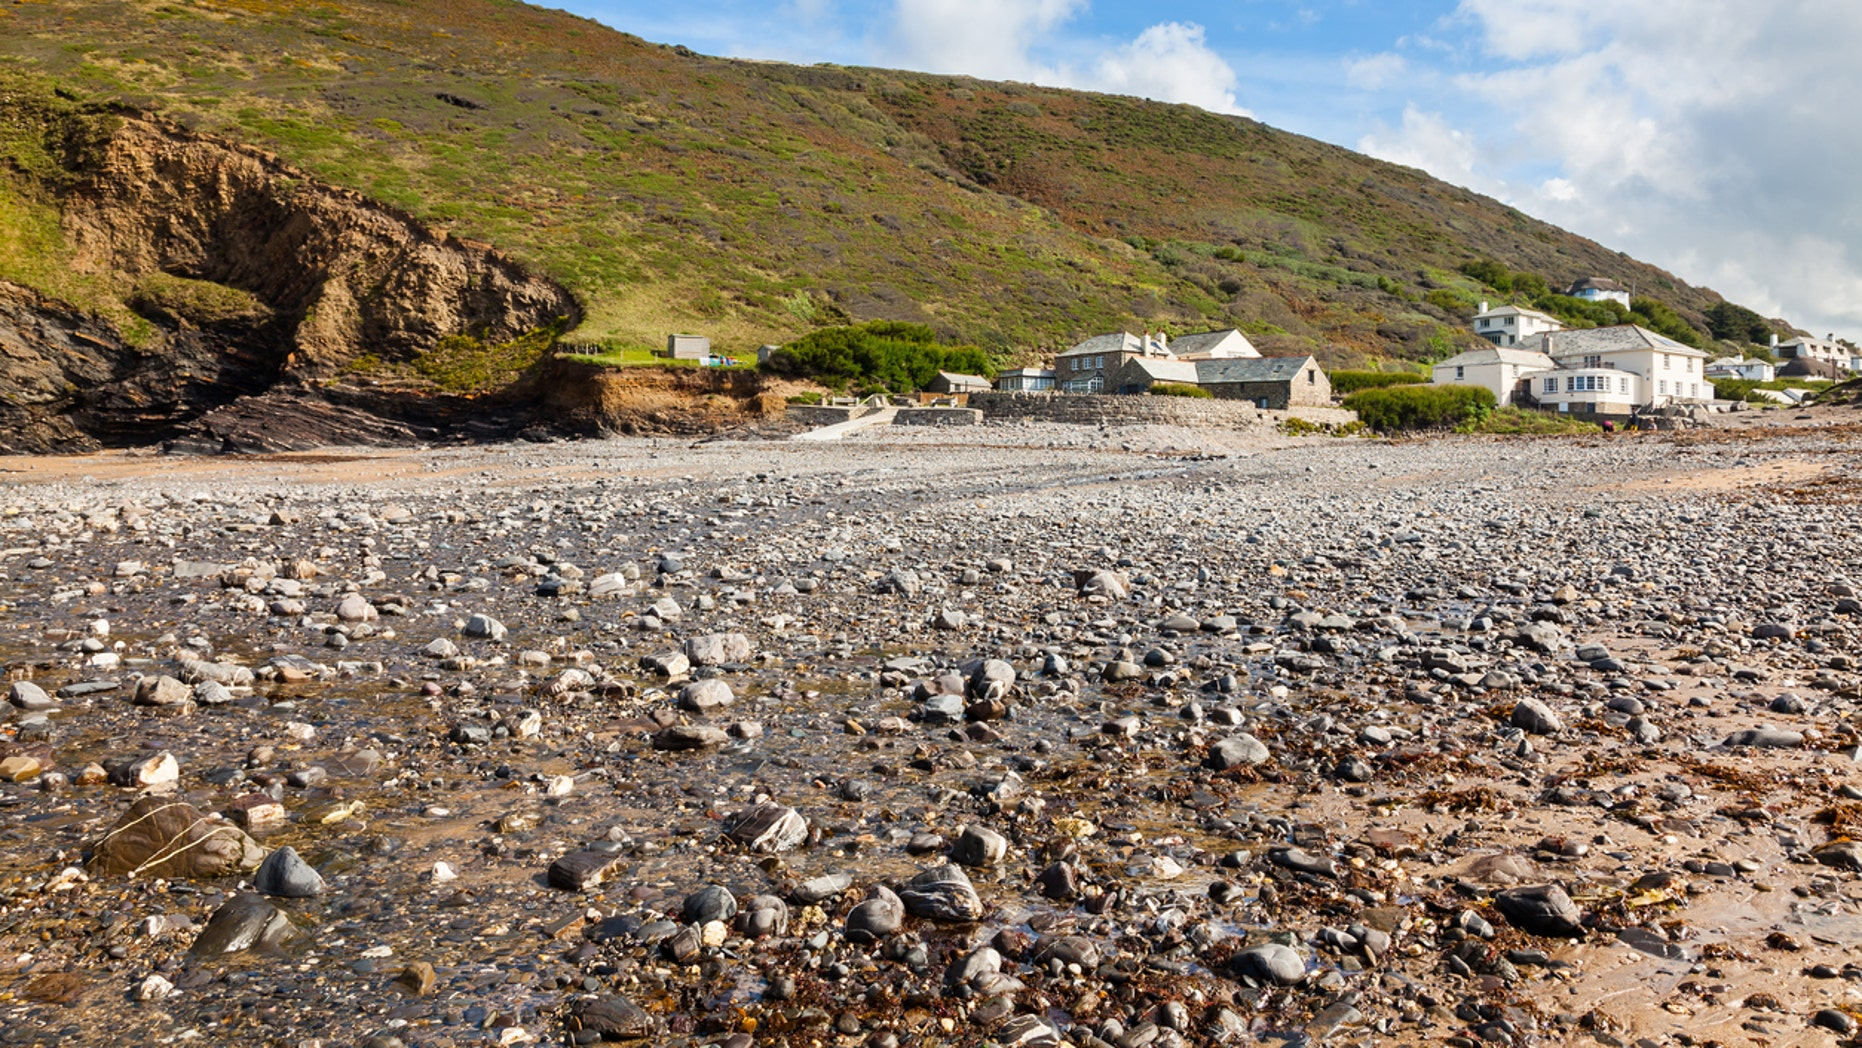 A man has been ordered to drive hundreds of miles back to Crackington Haven, Cornwall, and return the rocks that he stole from the beach.